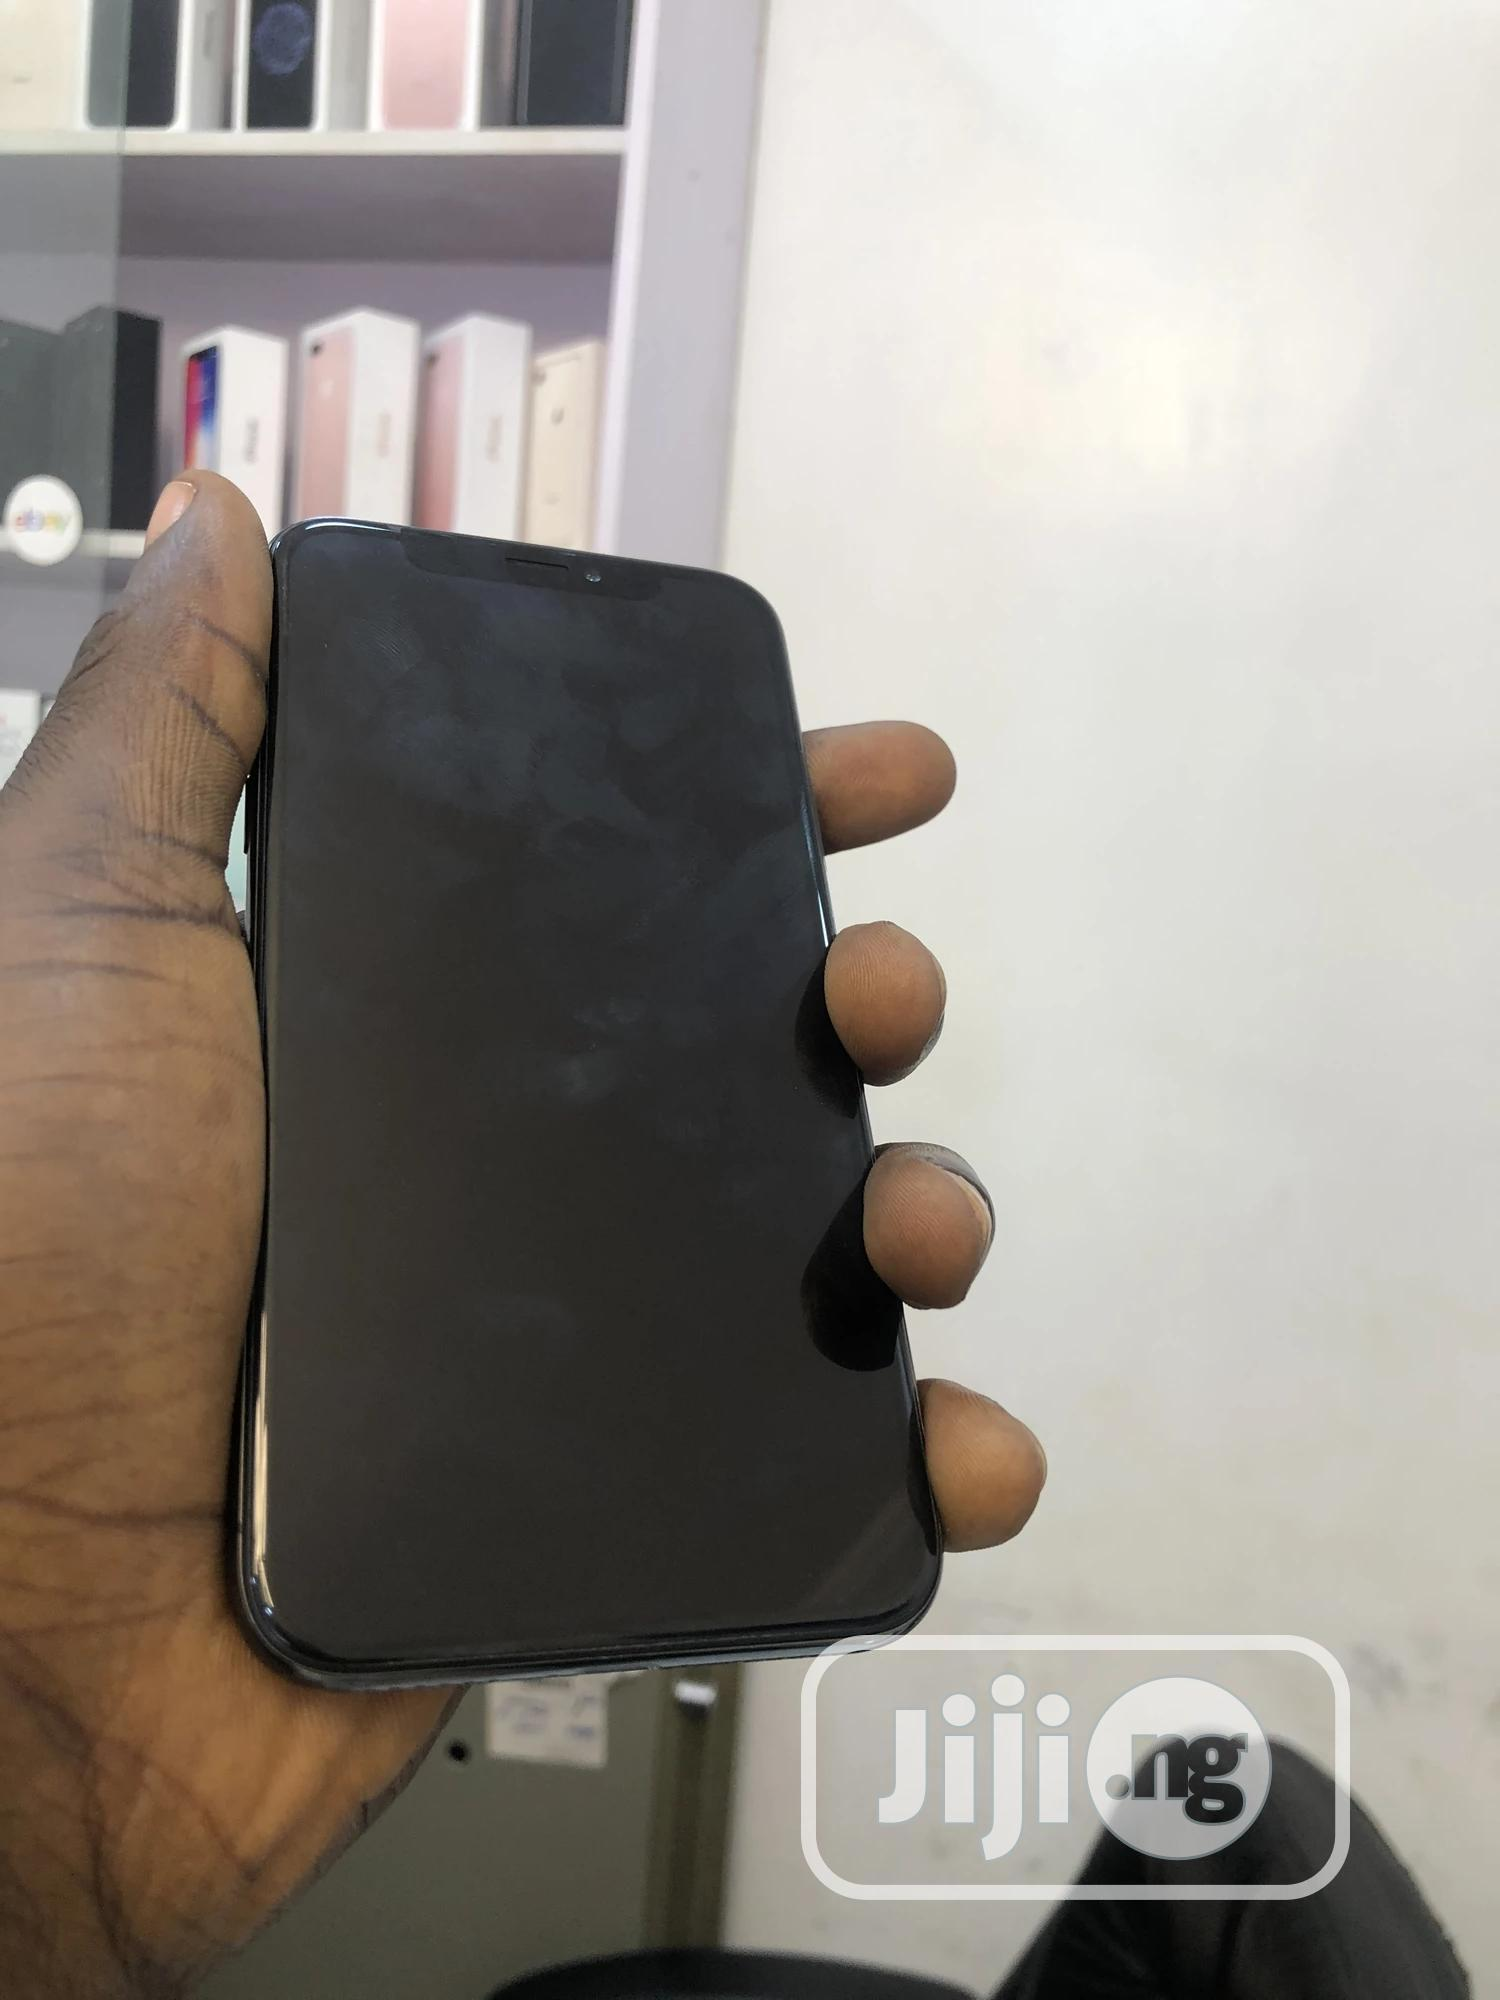 Apple iPhone 11 Pro 64 GB Green | Mobile Phones for sale in Wuse 2, Abuja (FCT) State, Nigeria